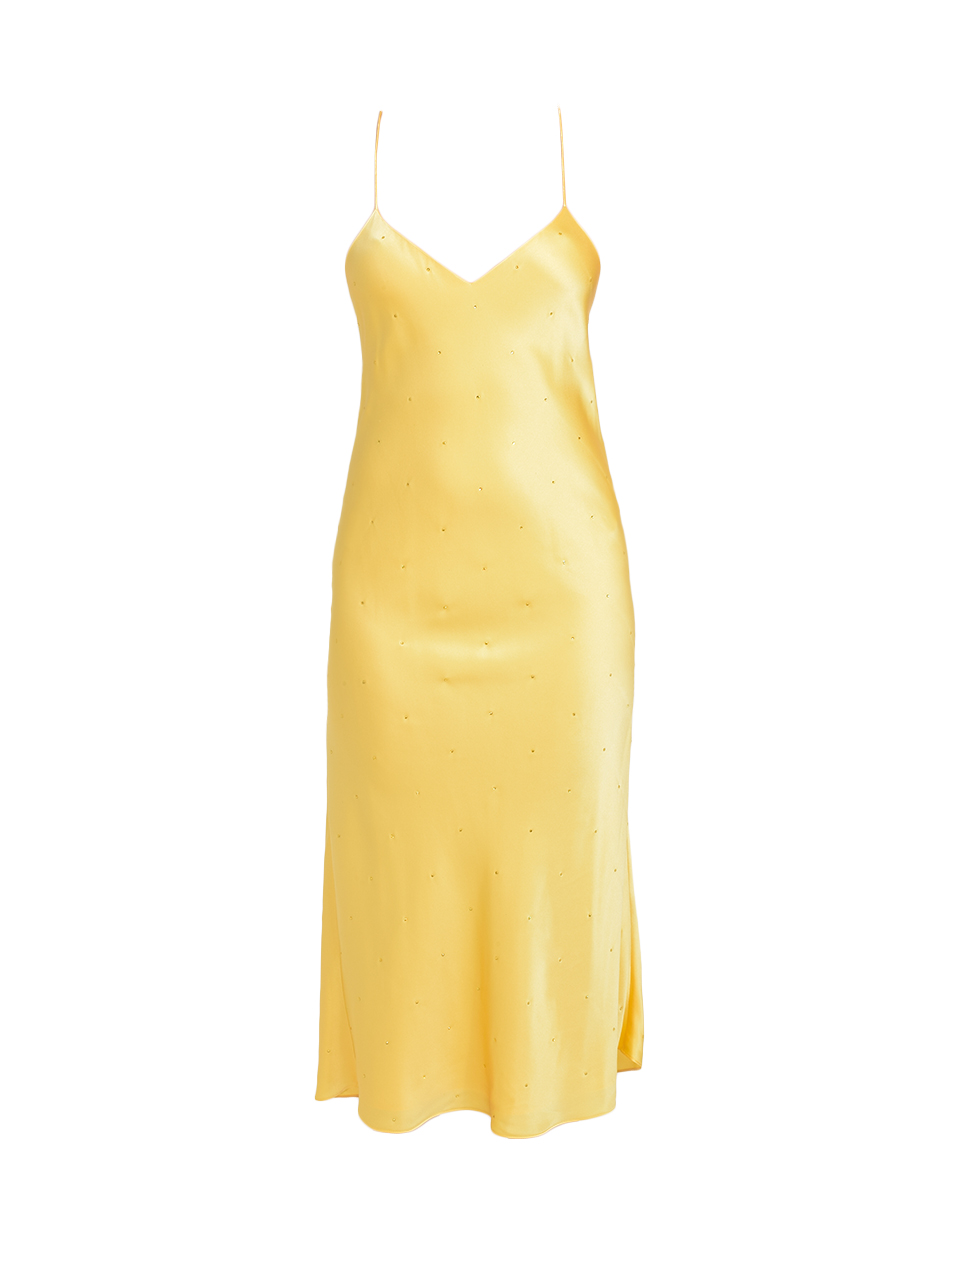 MICHELLE MASON Silk Charmeuse Midi Dress in Butter Product Shot